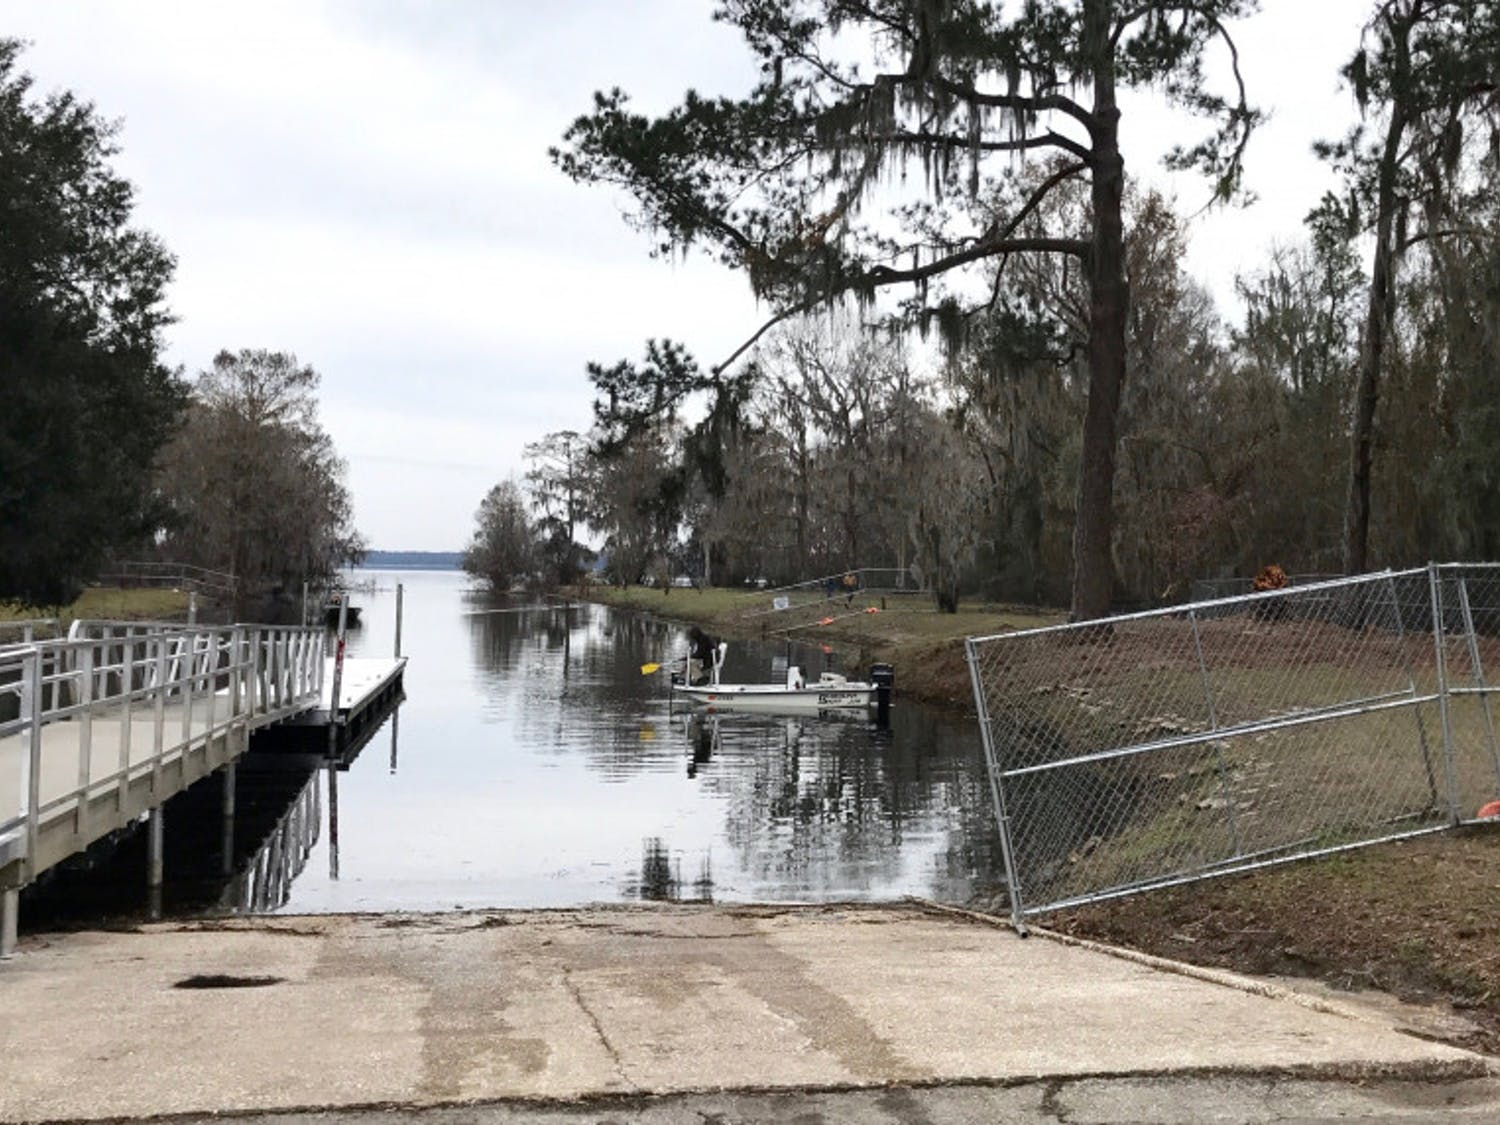 Earl P. Powers Park on Newnans Lake experienced severe flooding from Hurricane Irma, damaging the boat ramp and fishing pier.